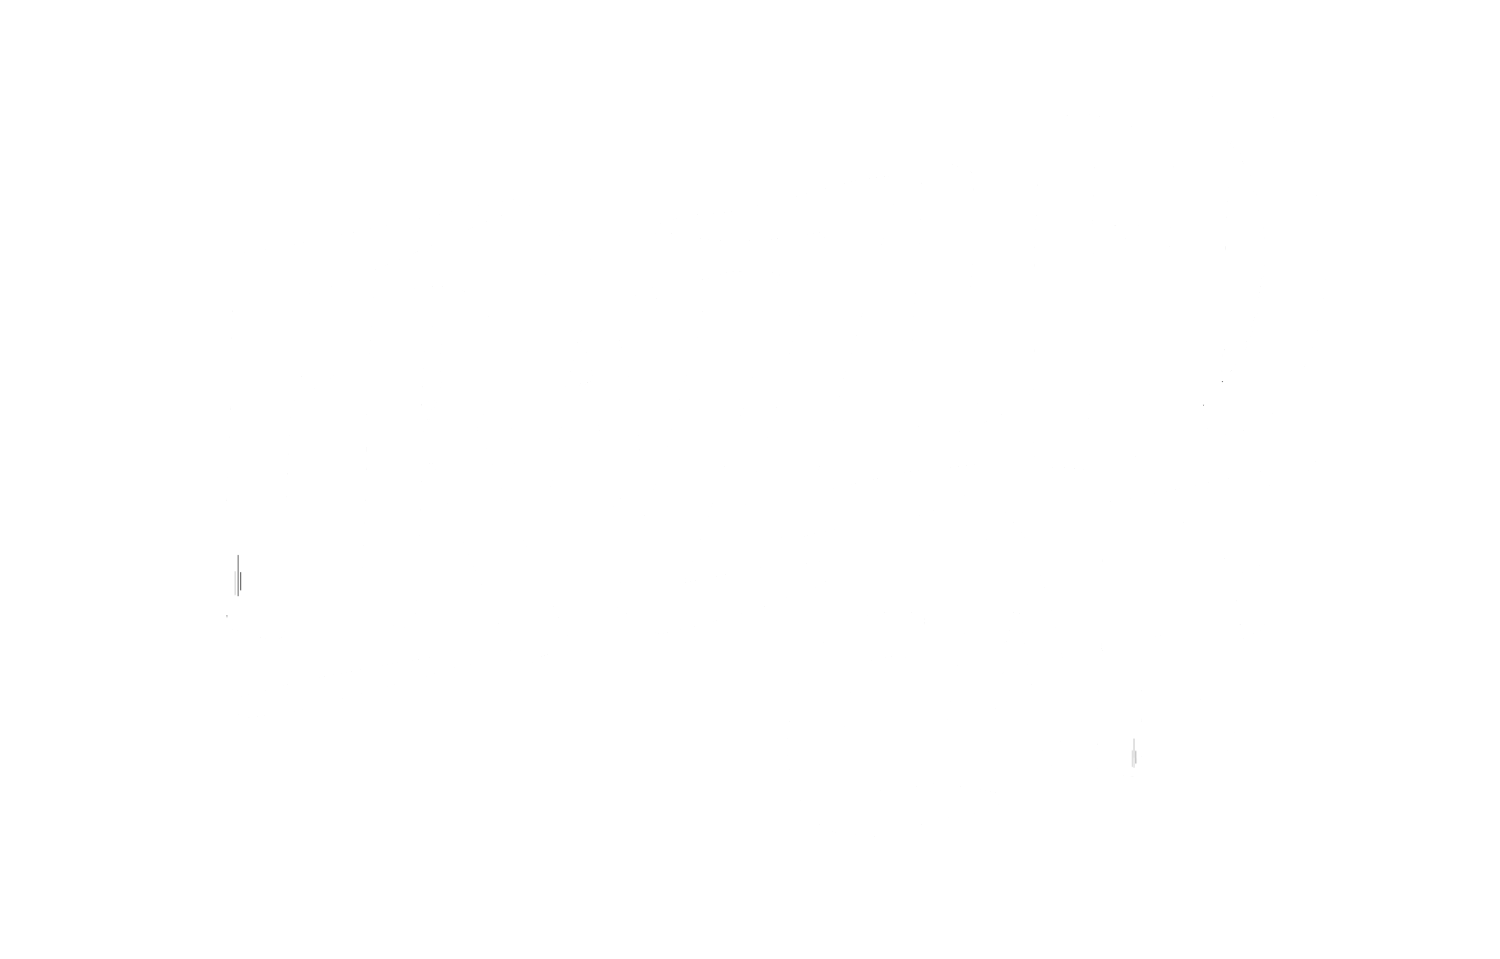 Frazzled Cafe | it's ok, to not be ok.